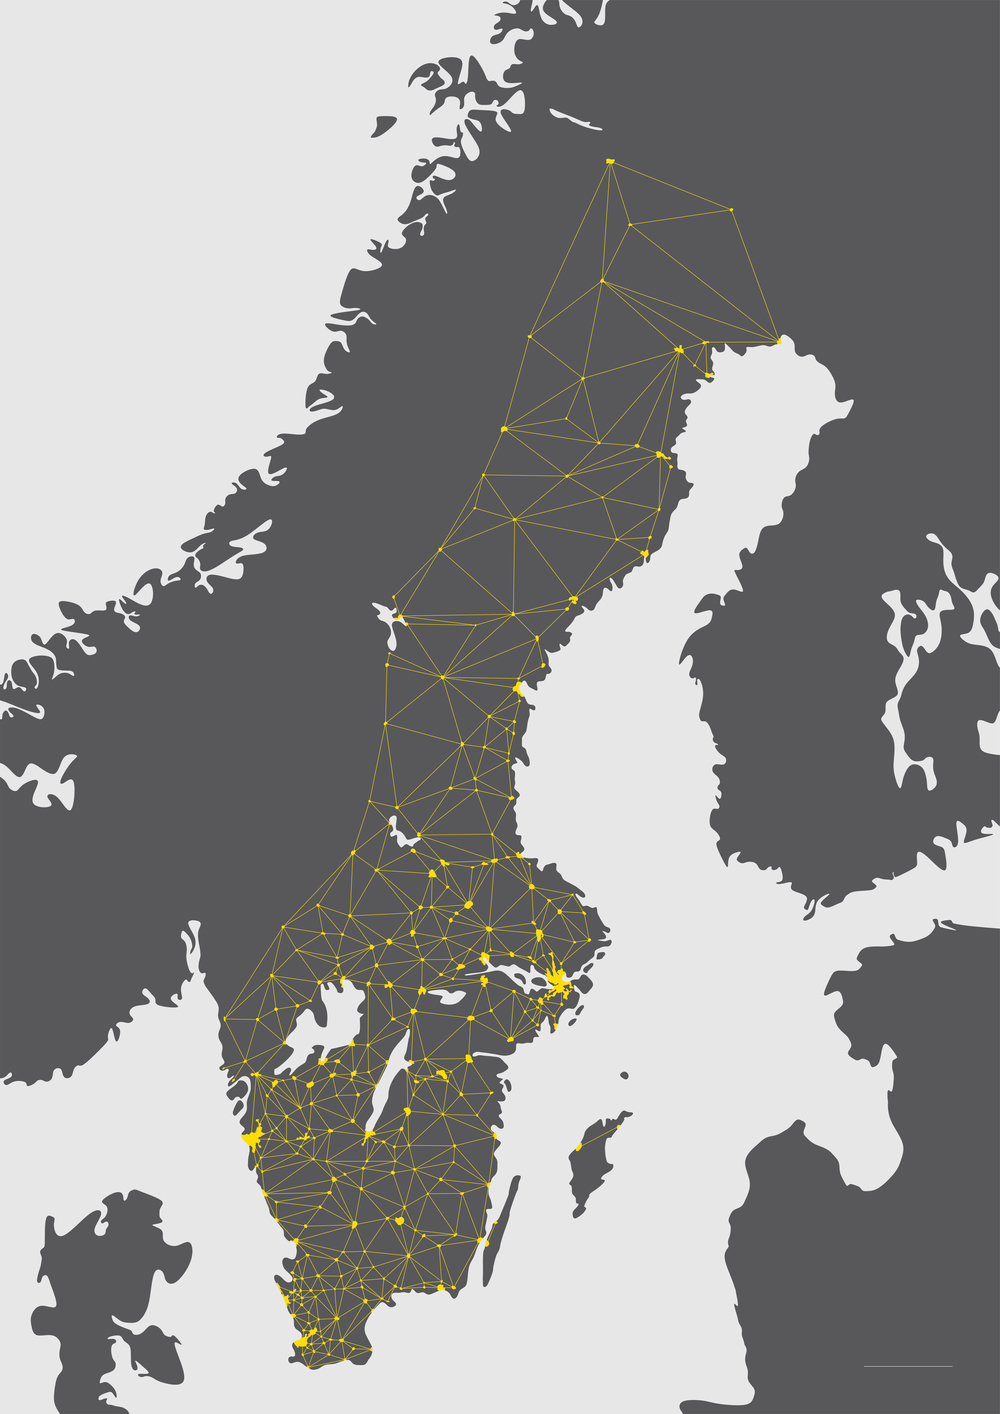 A0Poster_SwedenConnected.jpg